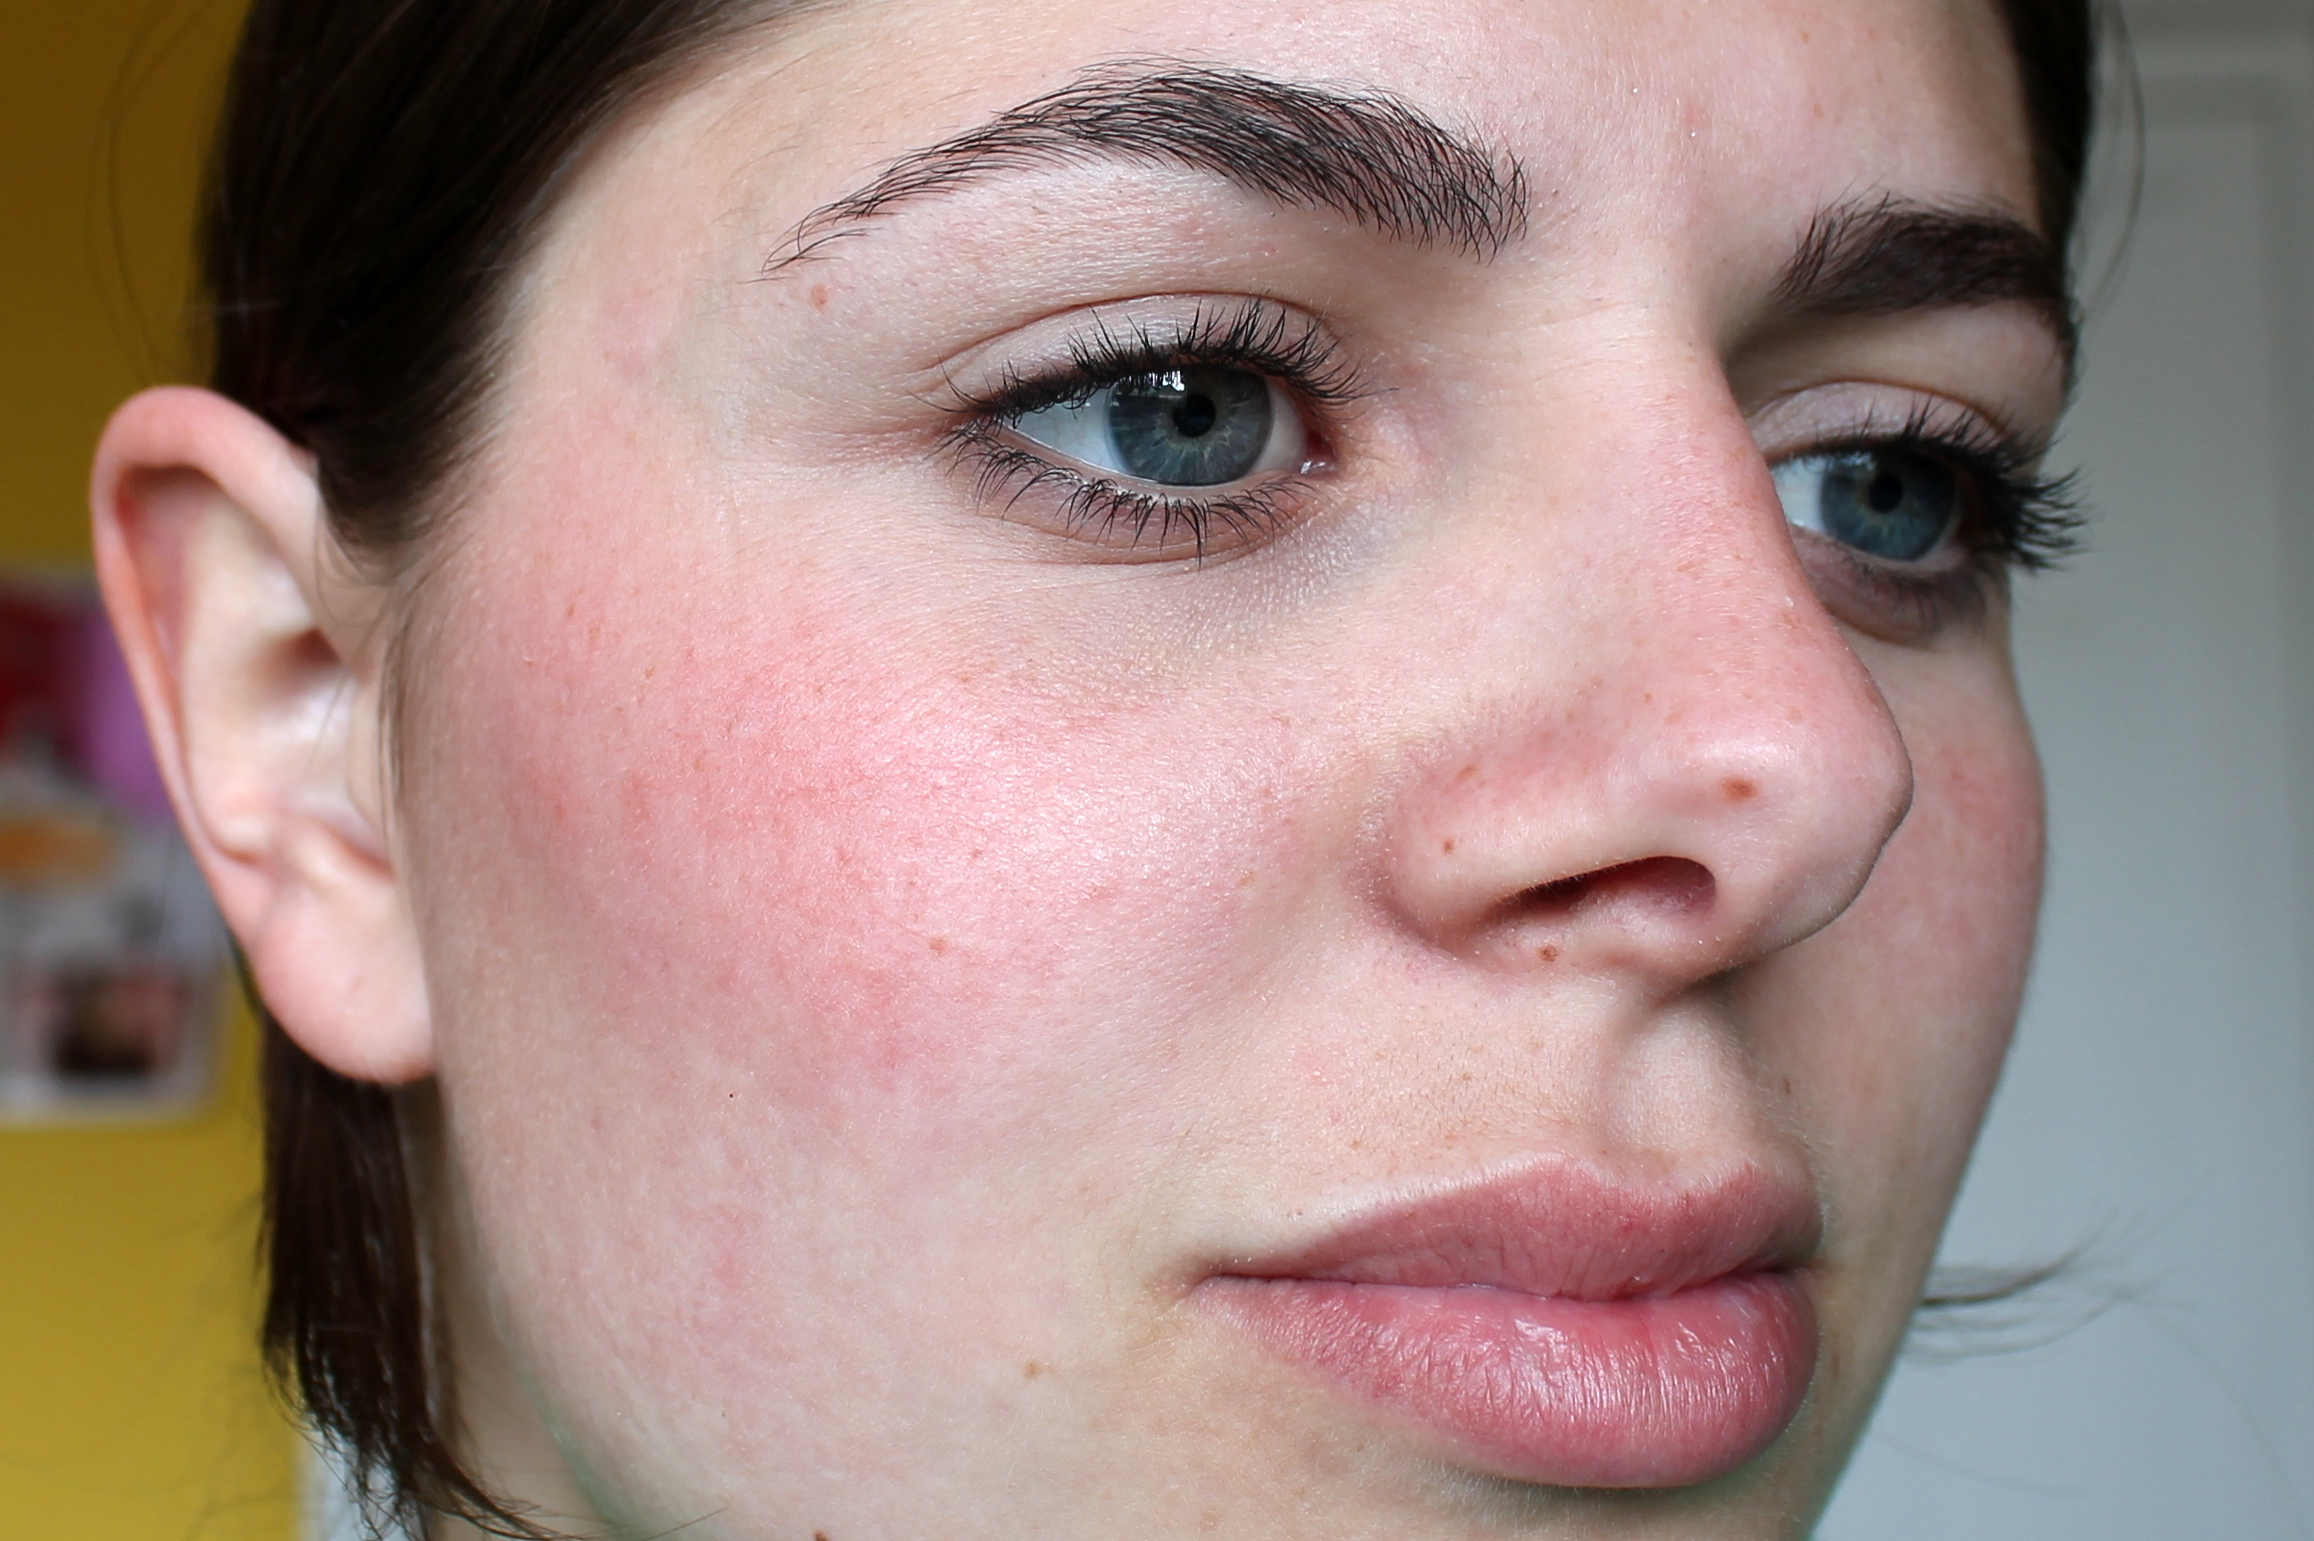 How To Make Cheeks Red Naturally